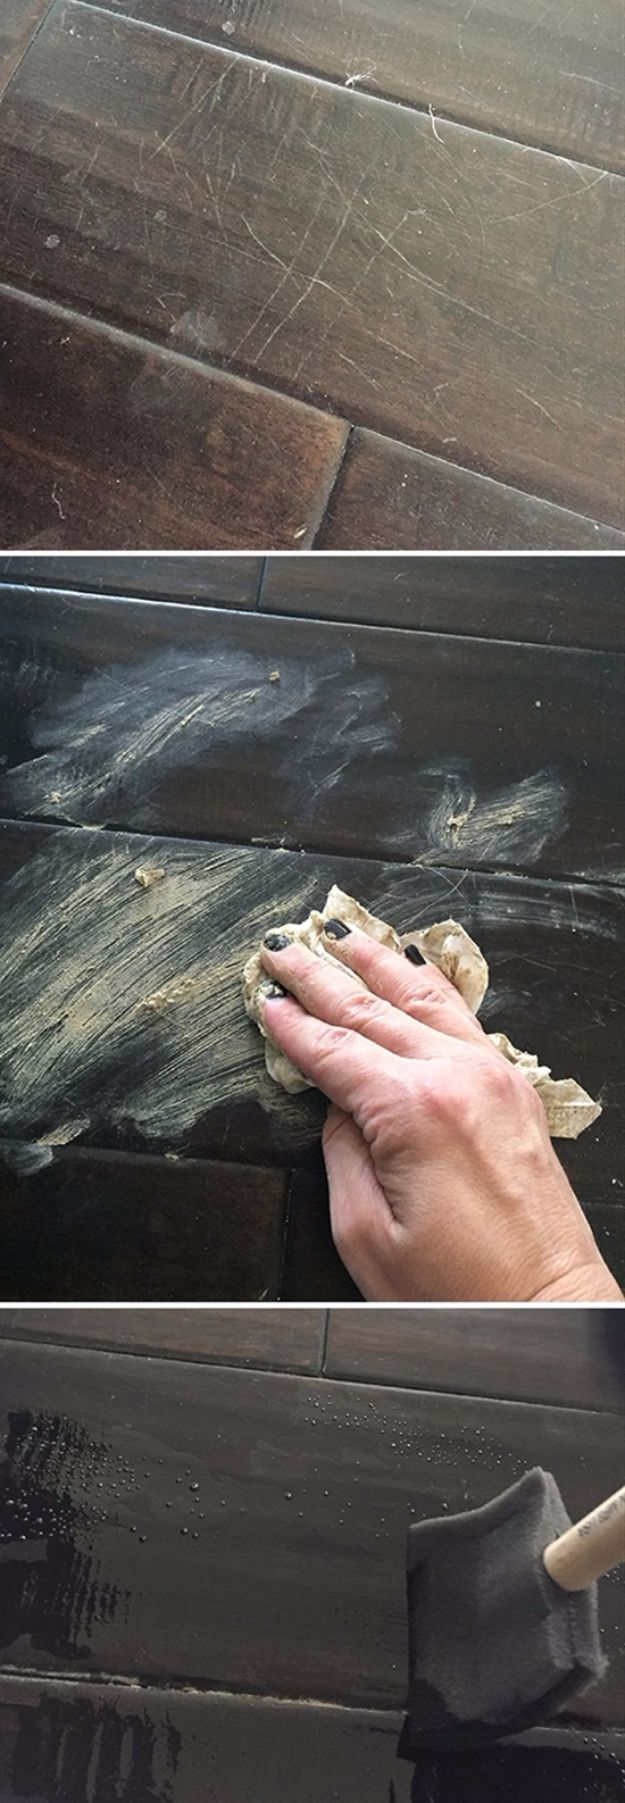 Easy Home Repair Hacks - Fix Scratches In Wood Floors - Quick Ways to Easily Fix Broken Things Around The House - DIY Tricks for Home Improvement and Repairs - Simple Solutions for Kitchen, Bath, Garage and Yard - Caulk, Grout, Wall Repair and Wood Patching and Staining #hacks #homeimprovement